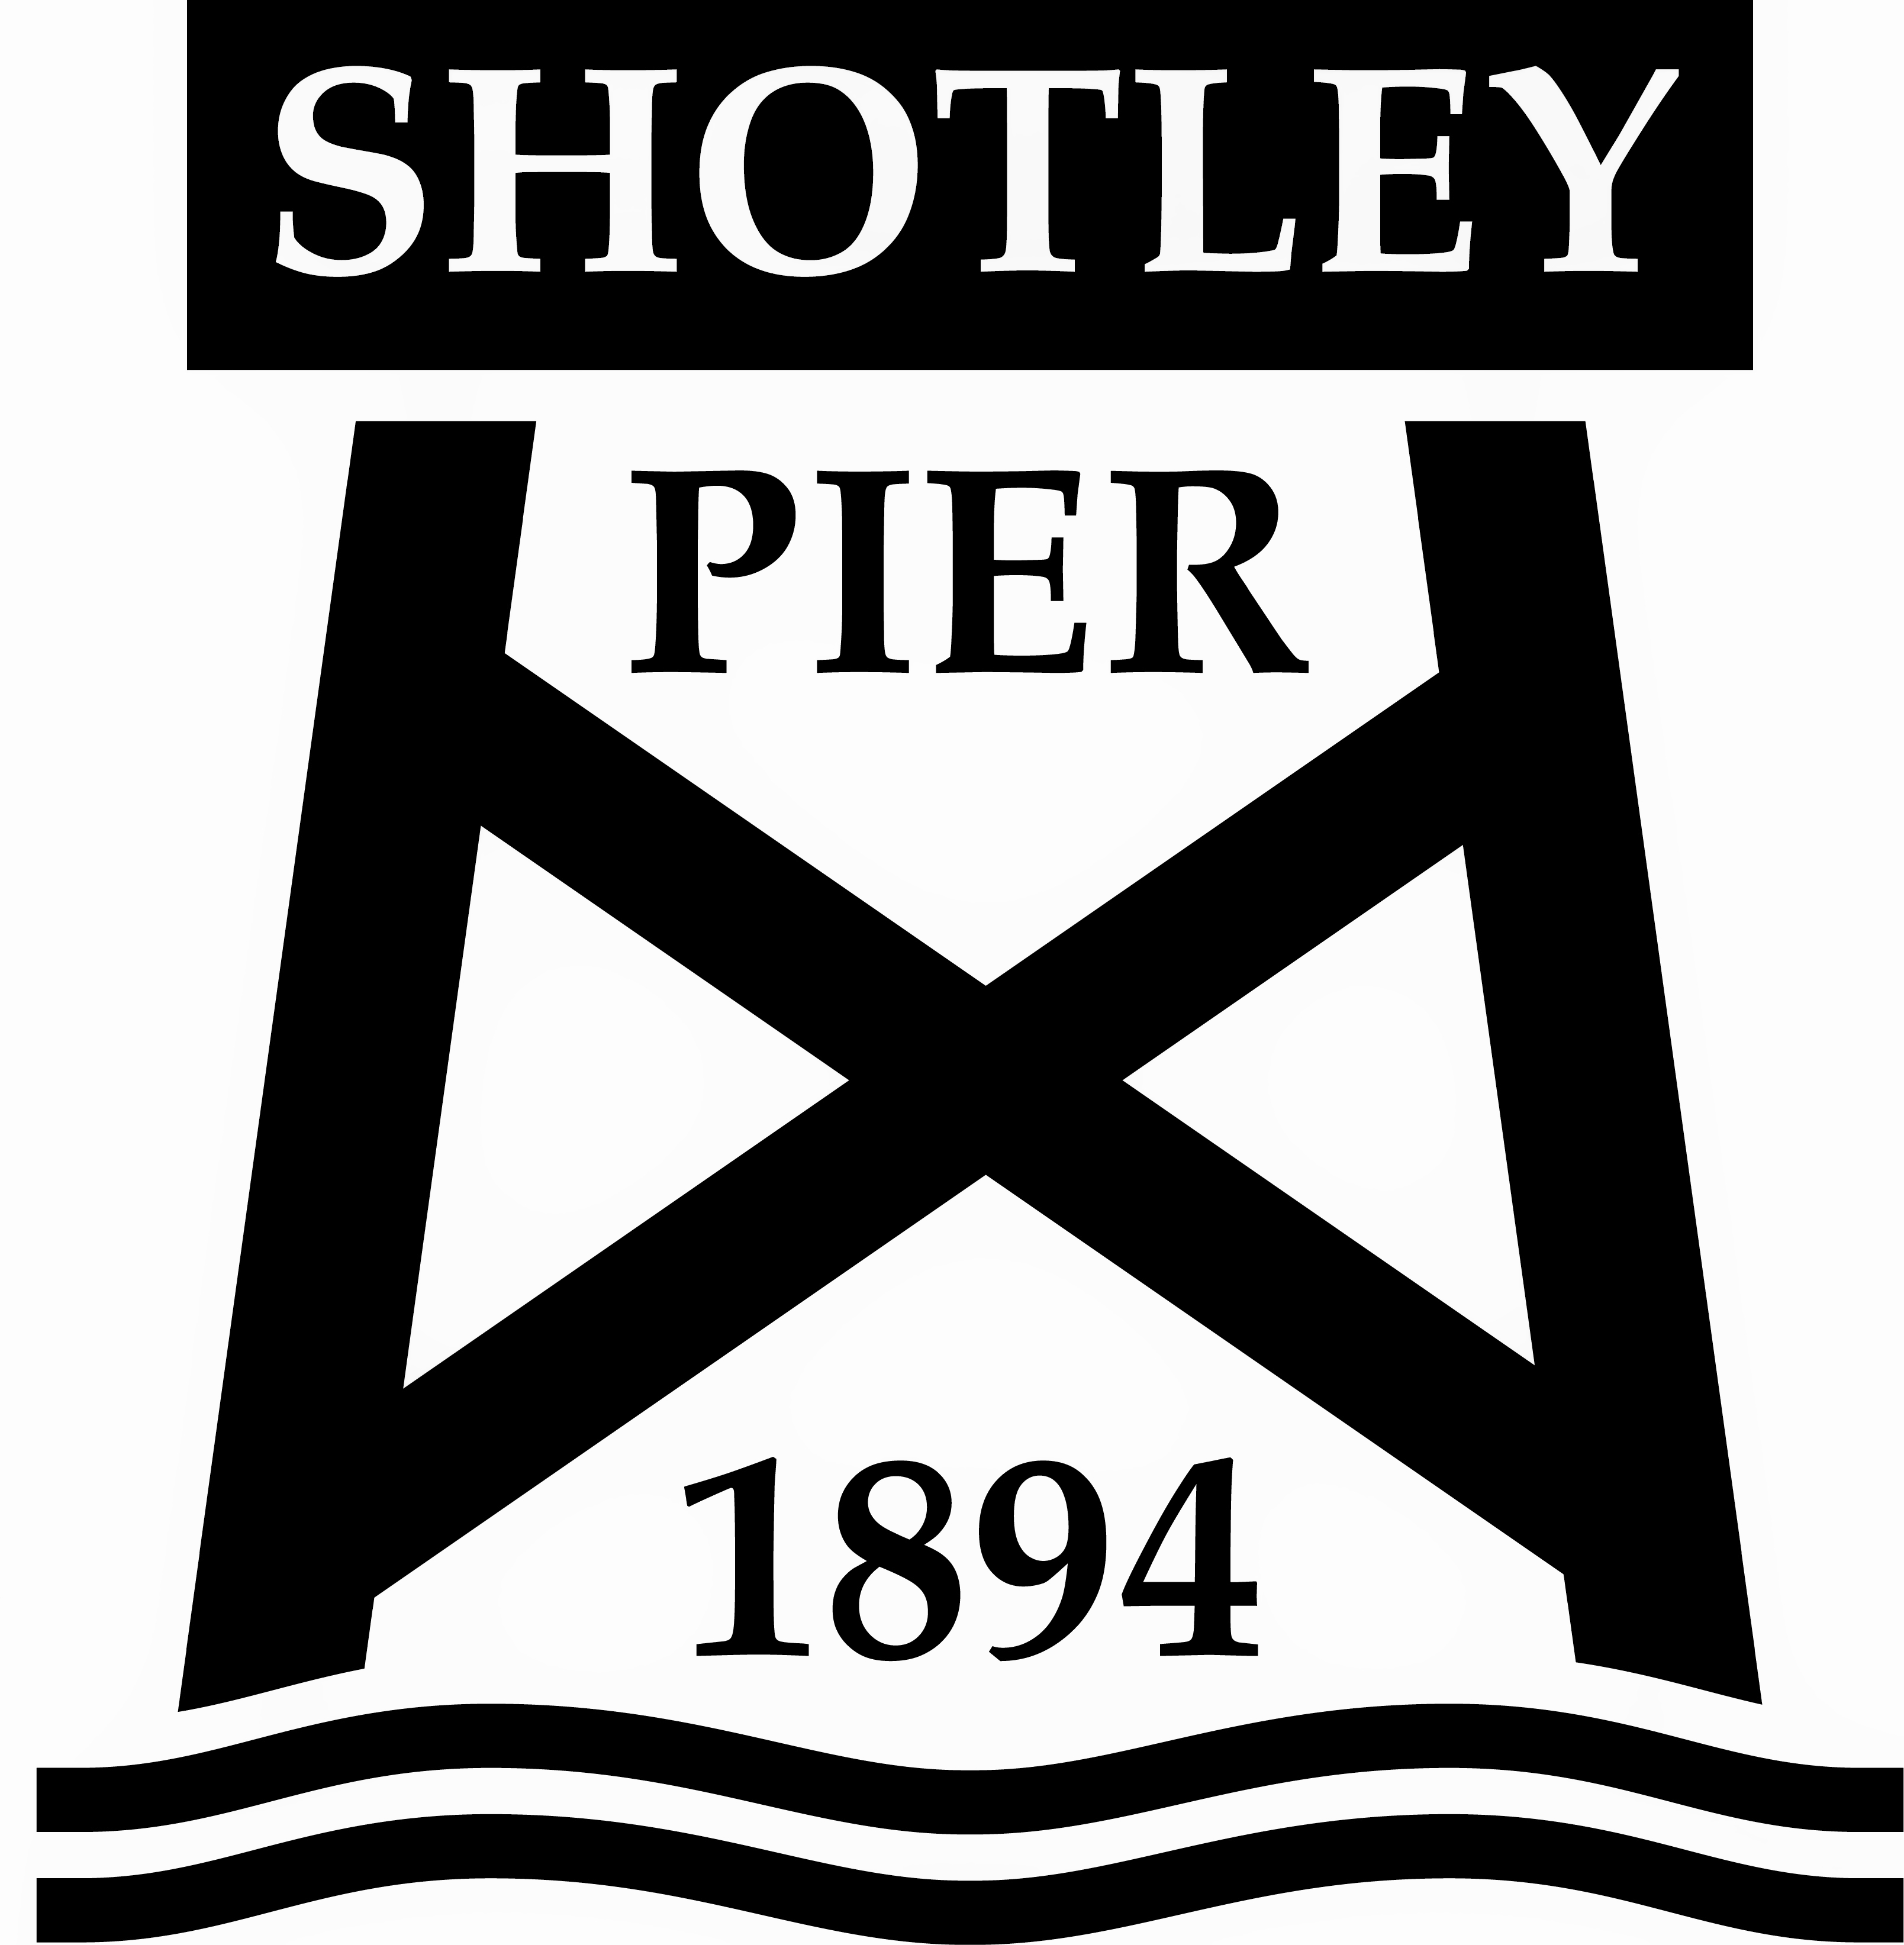 Latest Update from the Shotley Pier Group